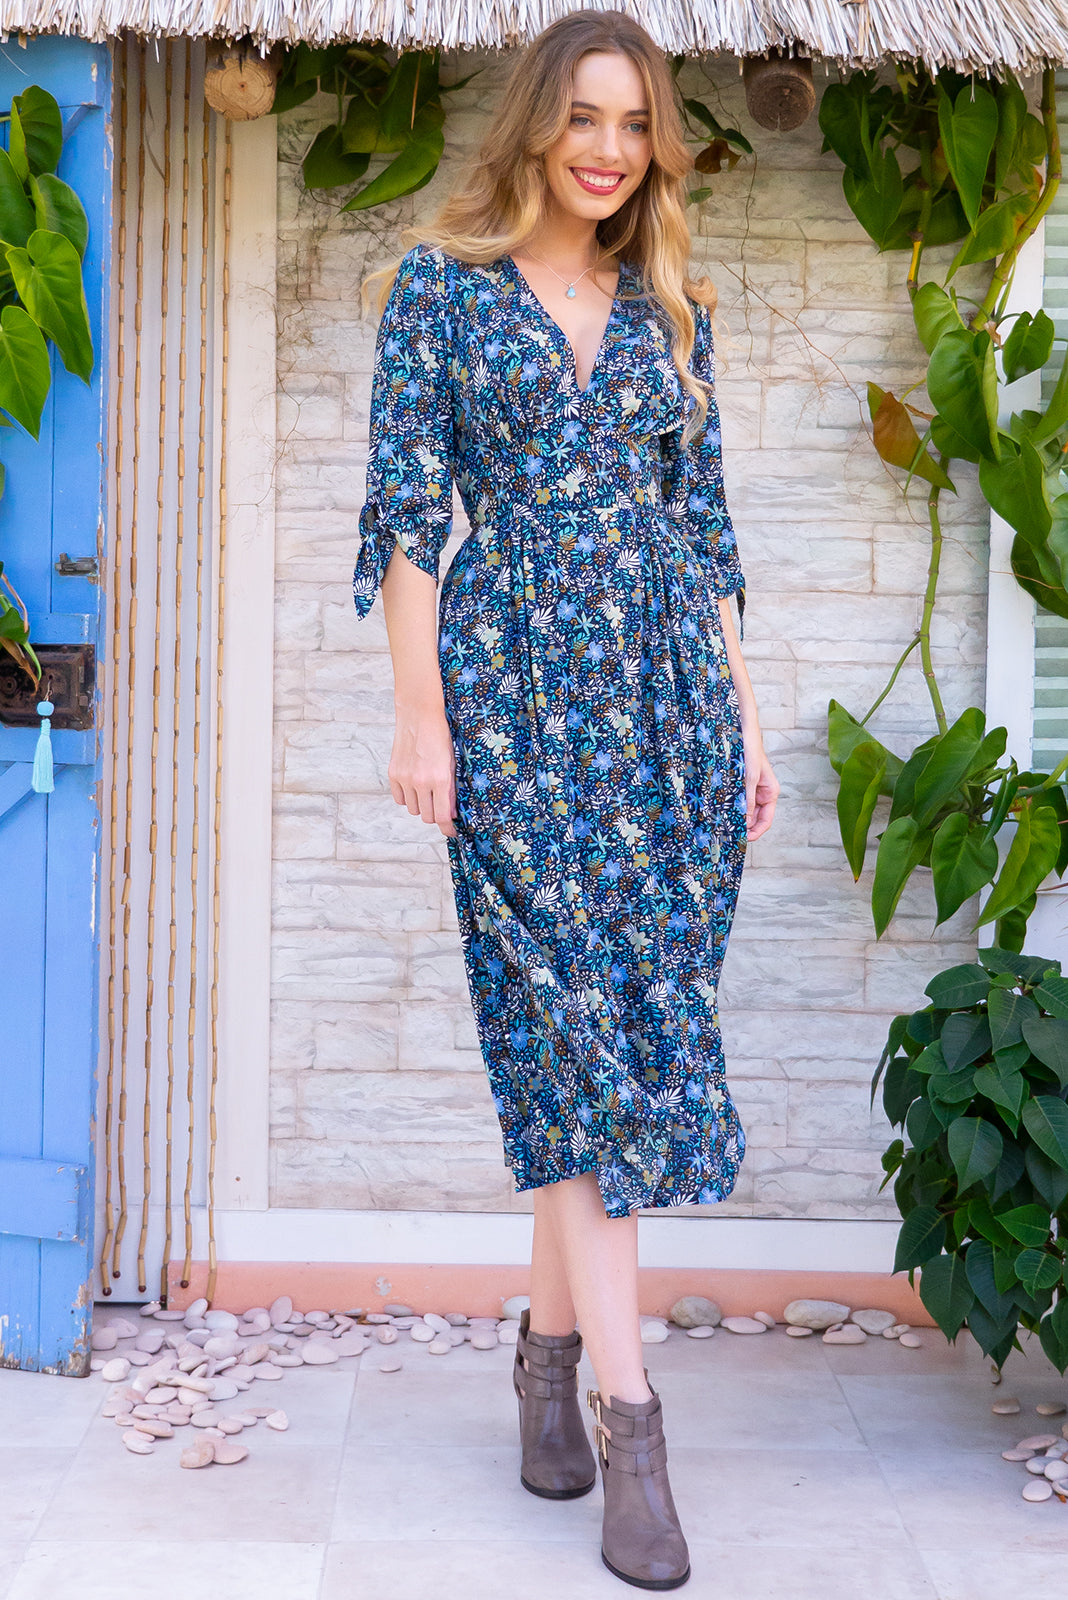 Henrietta Navy Forest Floor Midi dress features a vintage inspired fitted basque waist and elasticated waist with a midi sleeve and deep v neck the fabric is a soft woven rayon in a soft romantic bright bohemian ditzy floral print